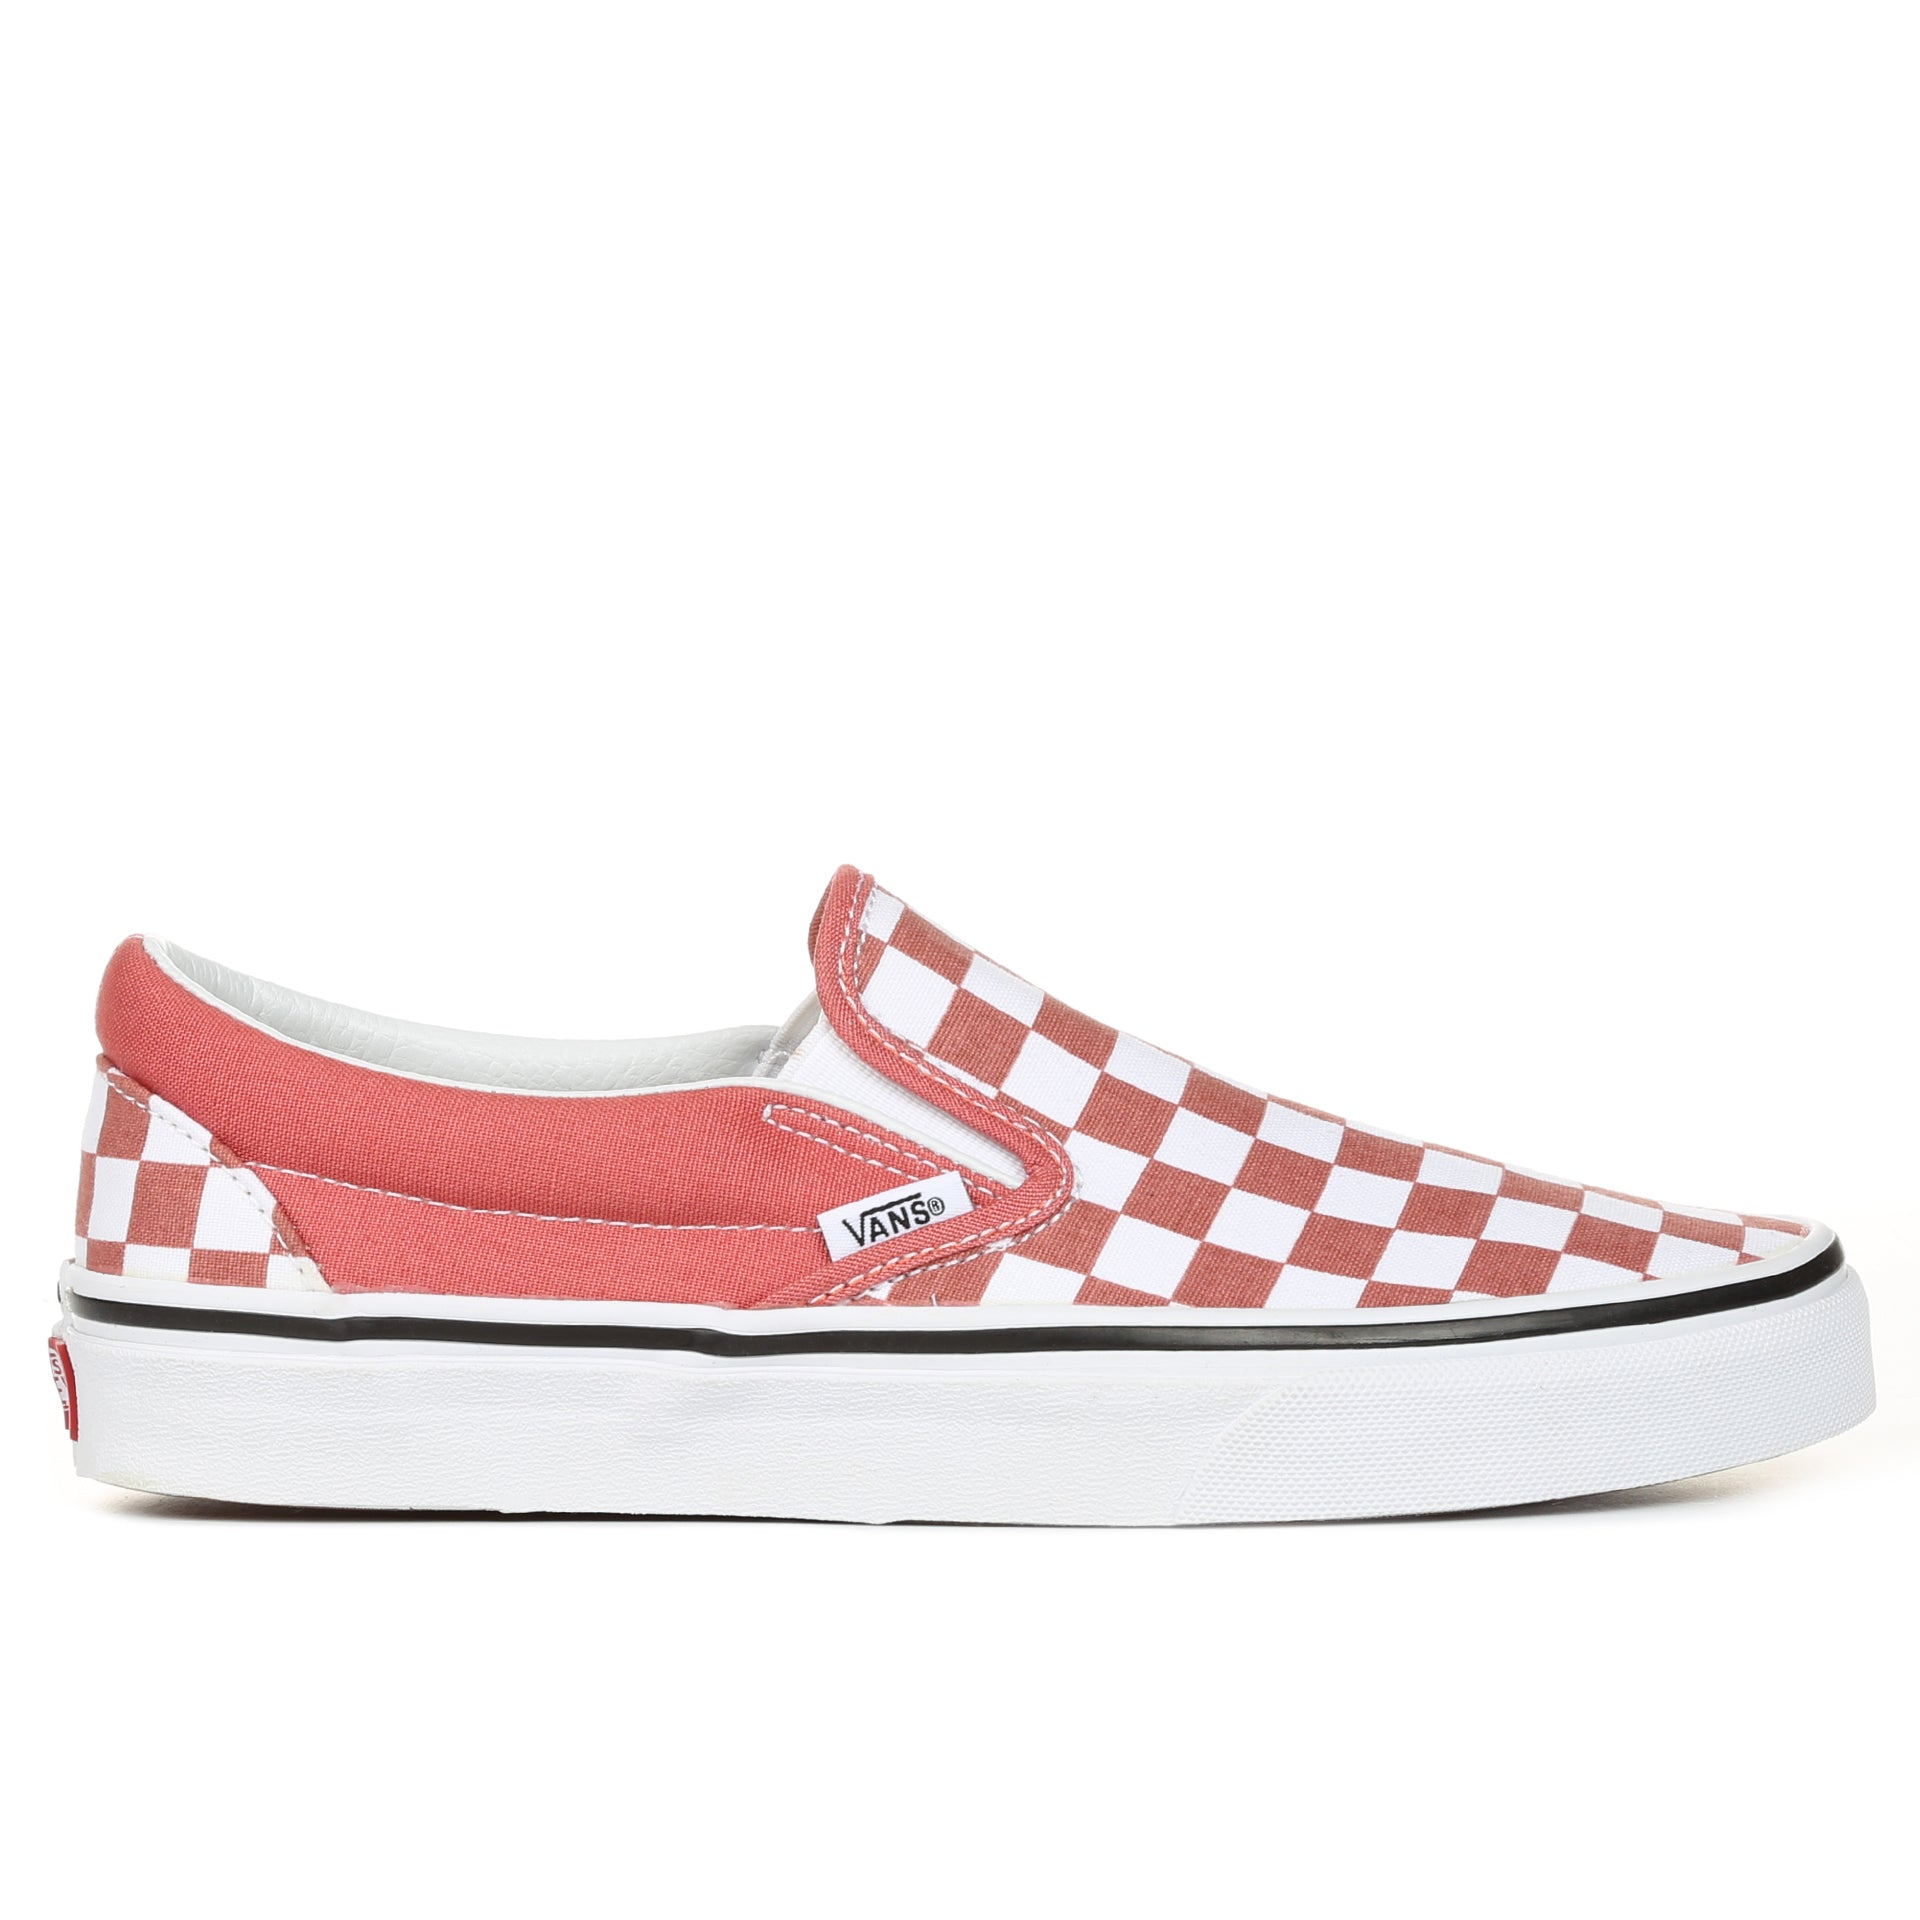 various colors dirt cheap low price sale Vans Classic Slip On - Faded Rose